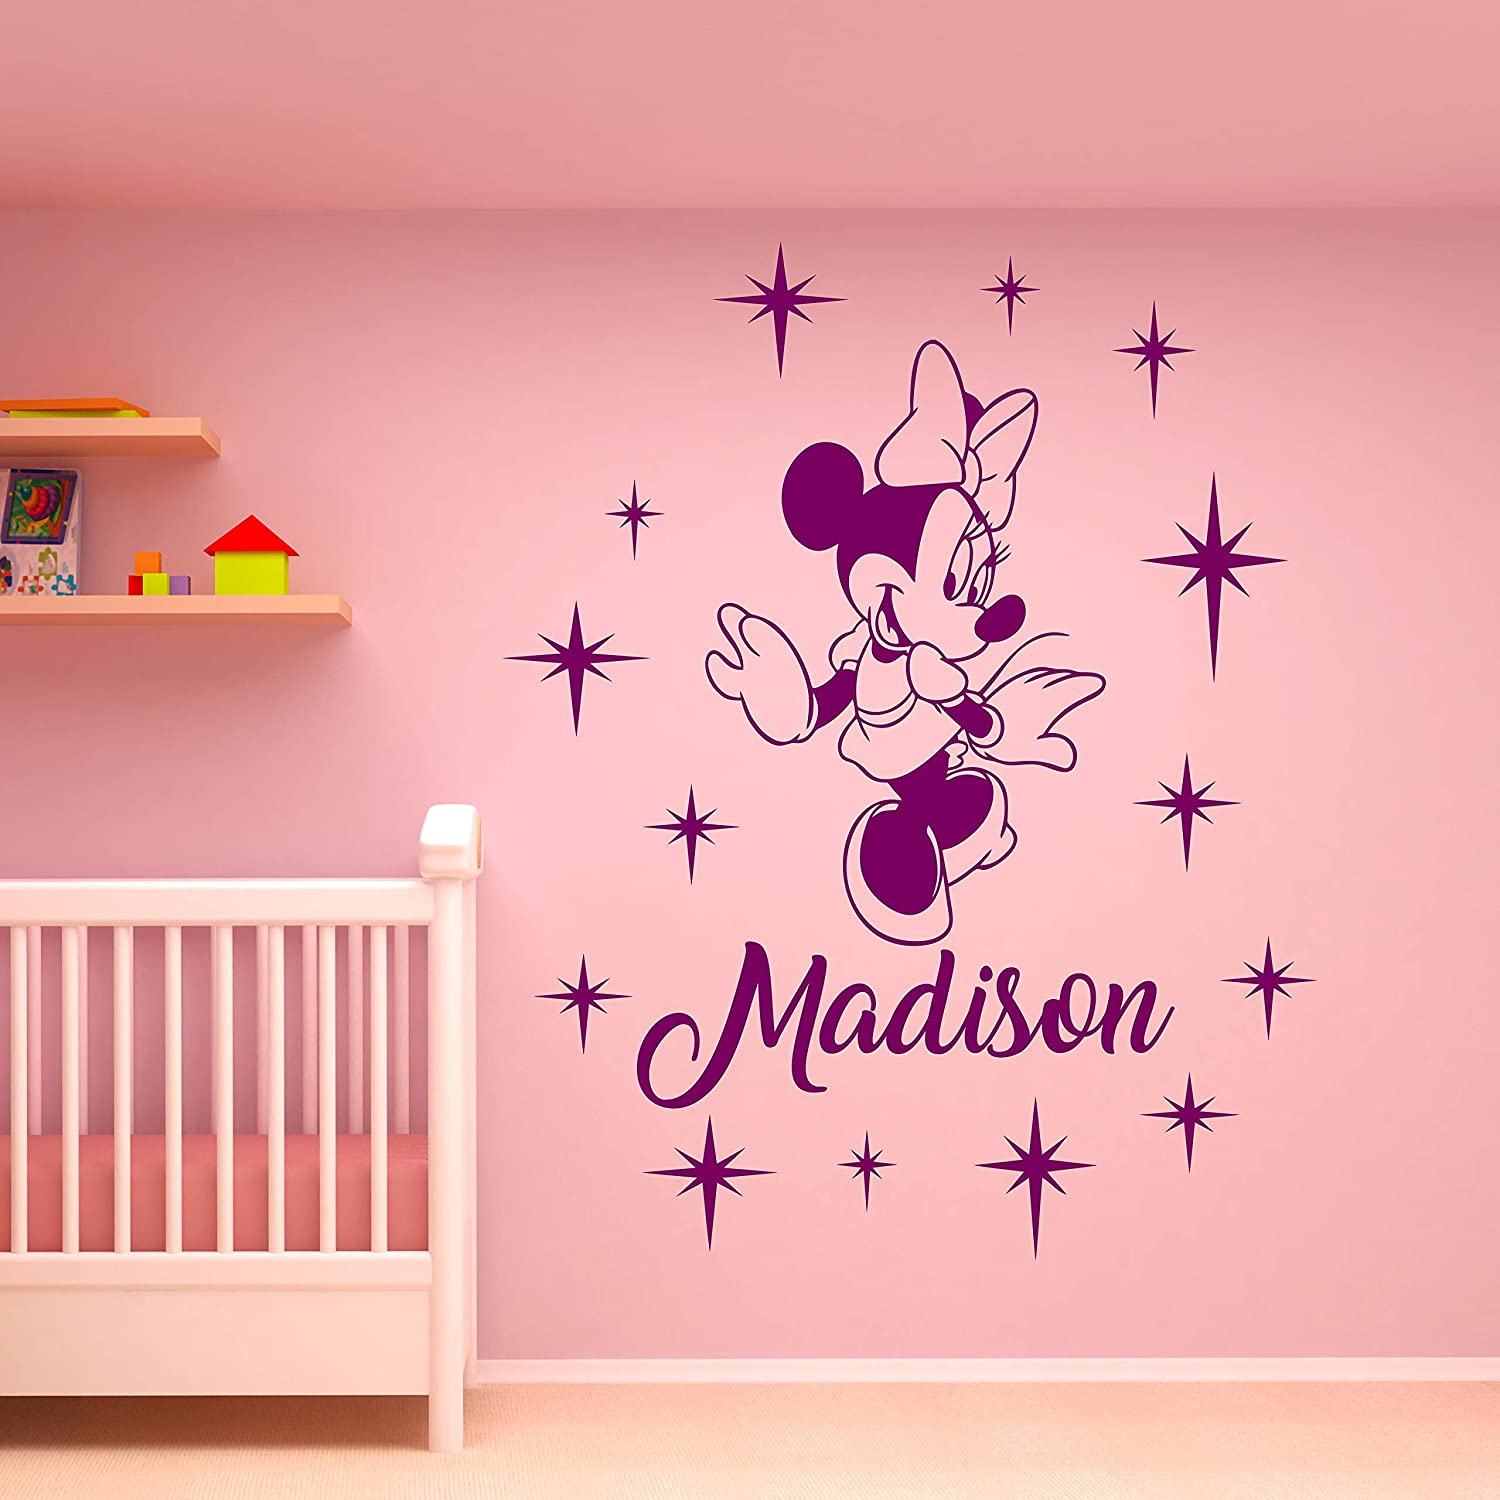 Personalized Baby Name Wall Decal Minnie Mouse Custom Decals Mural Decors Cartoon Vinyl Stickers Kids Baby Girls Room Nursery Wall Art Decor M